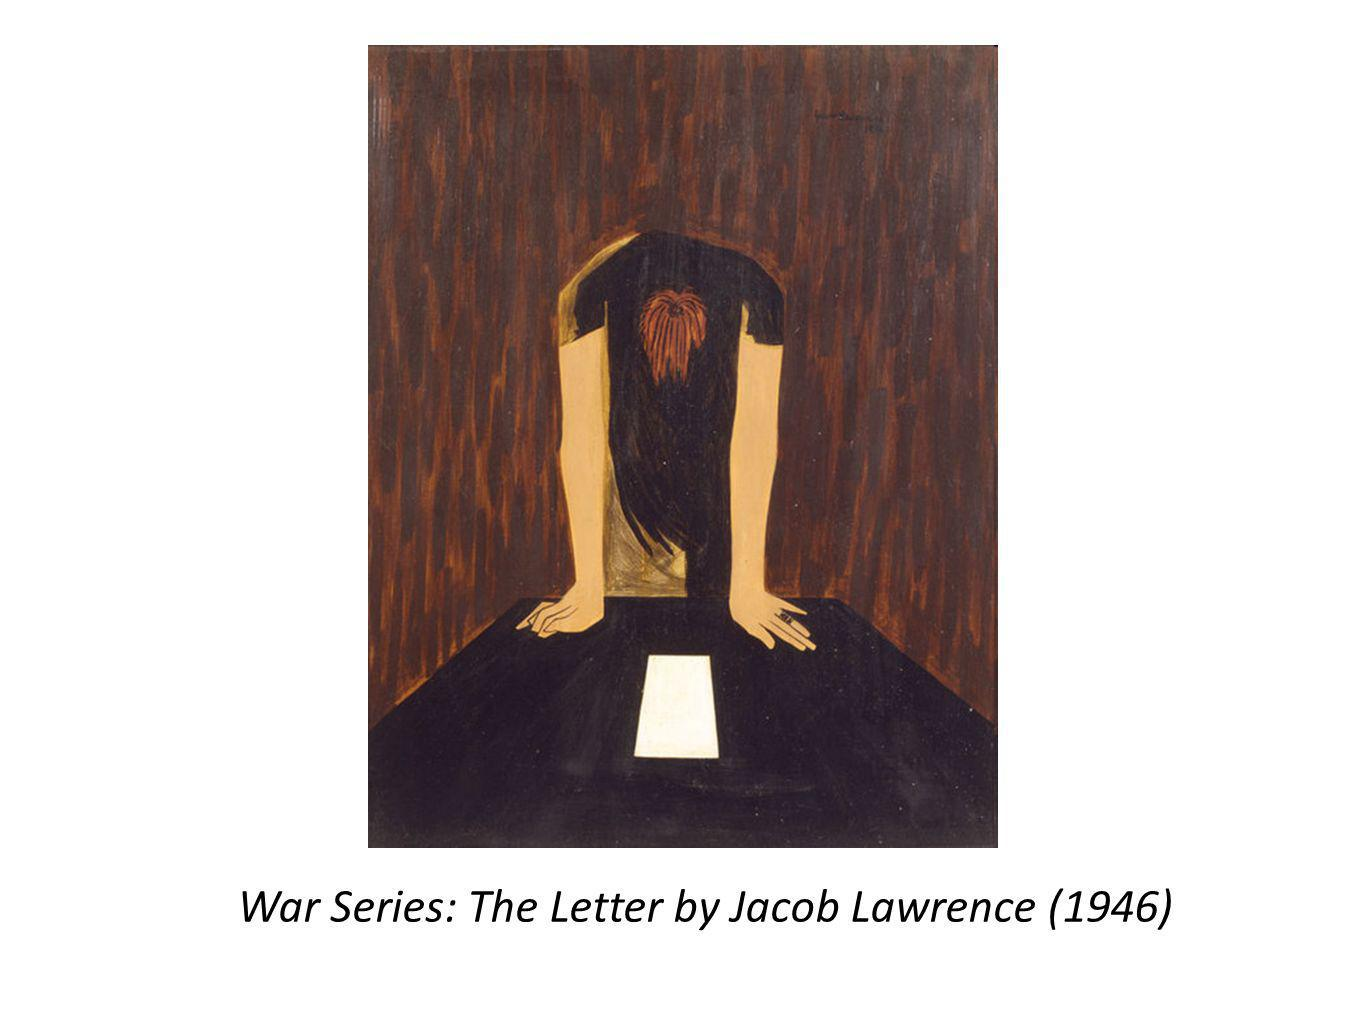 War Series: The Letter by Jacob Lawrence (1946)